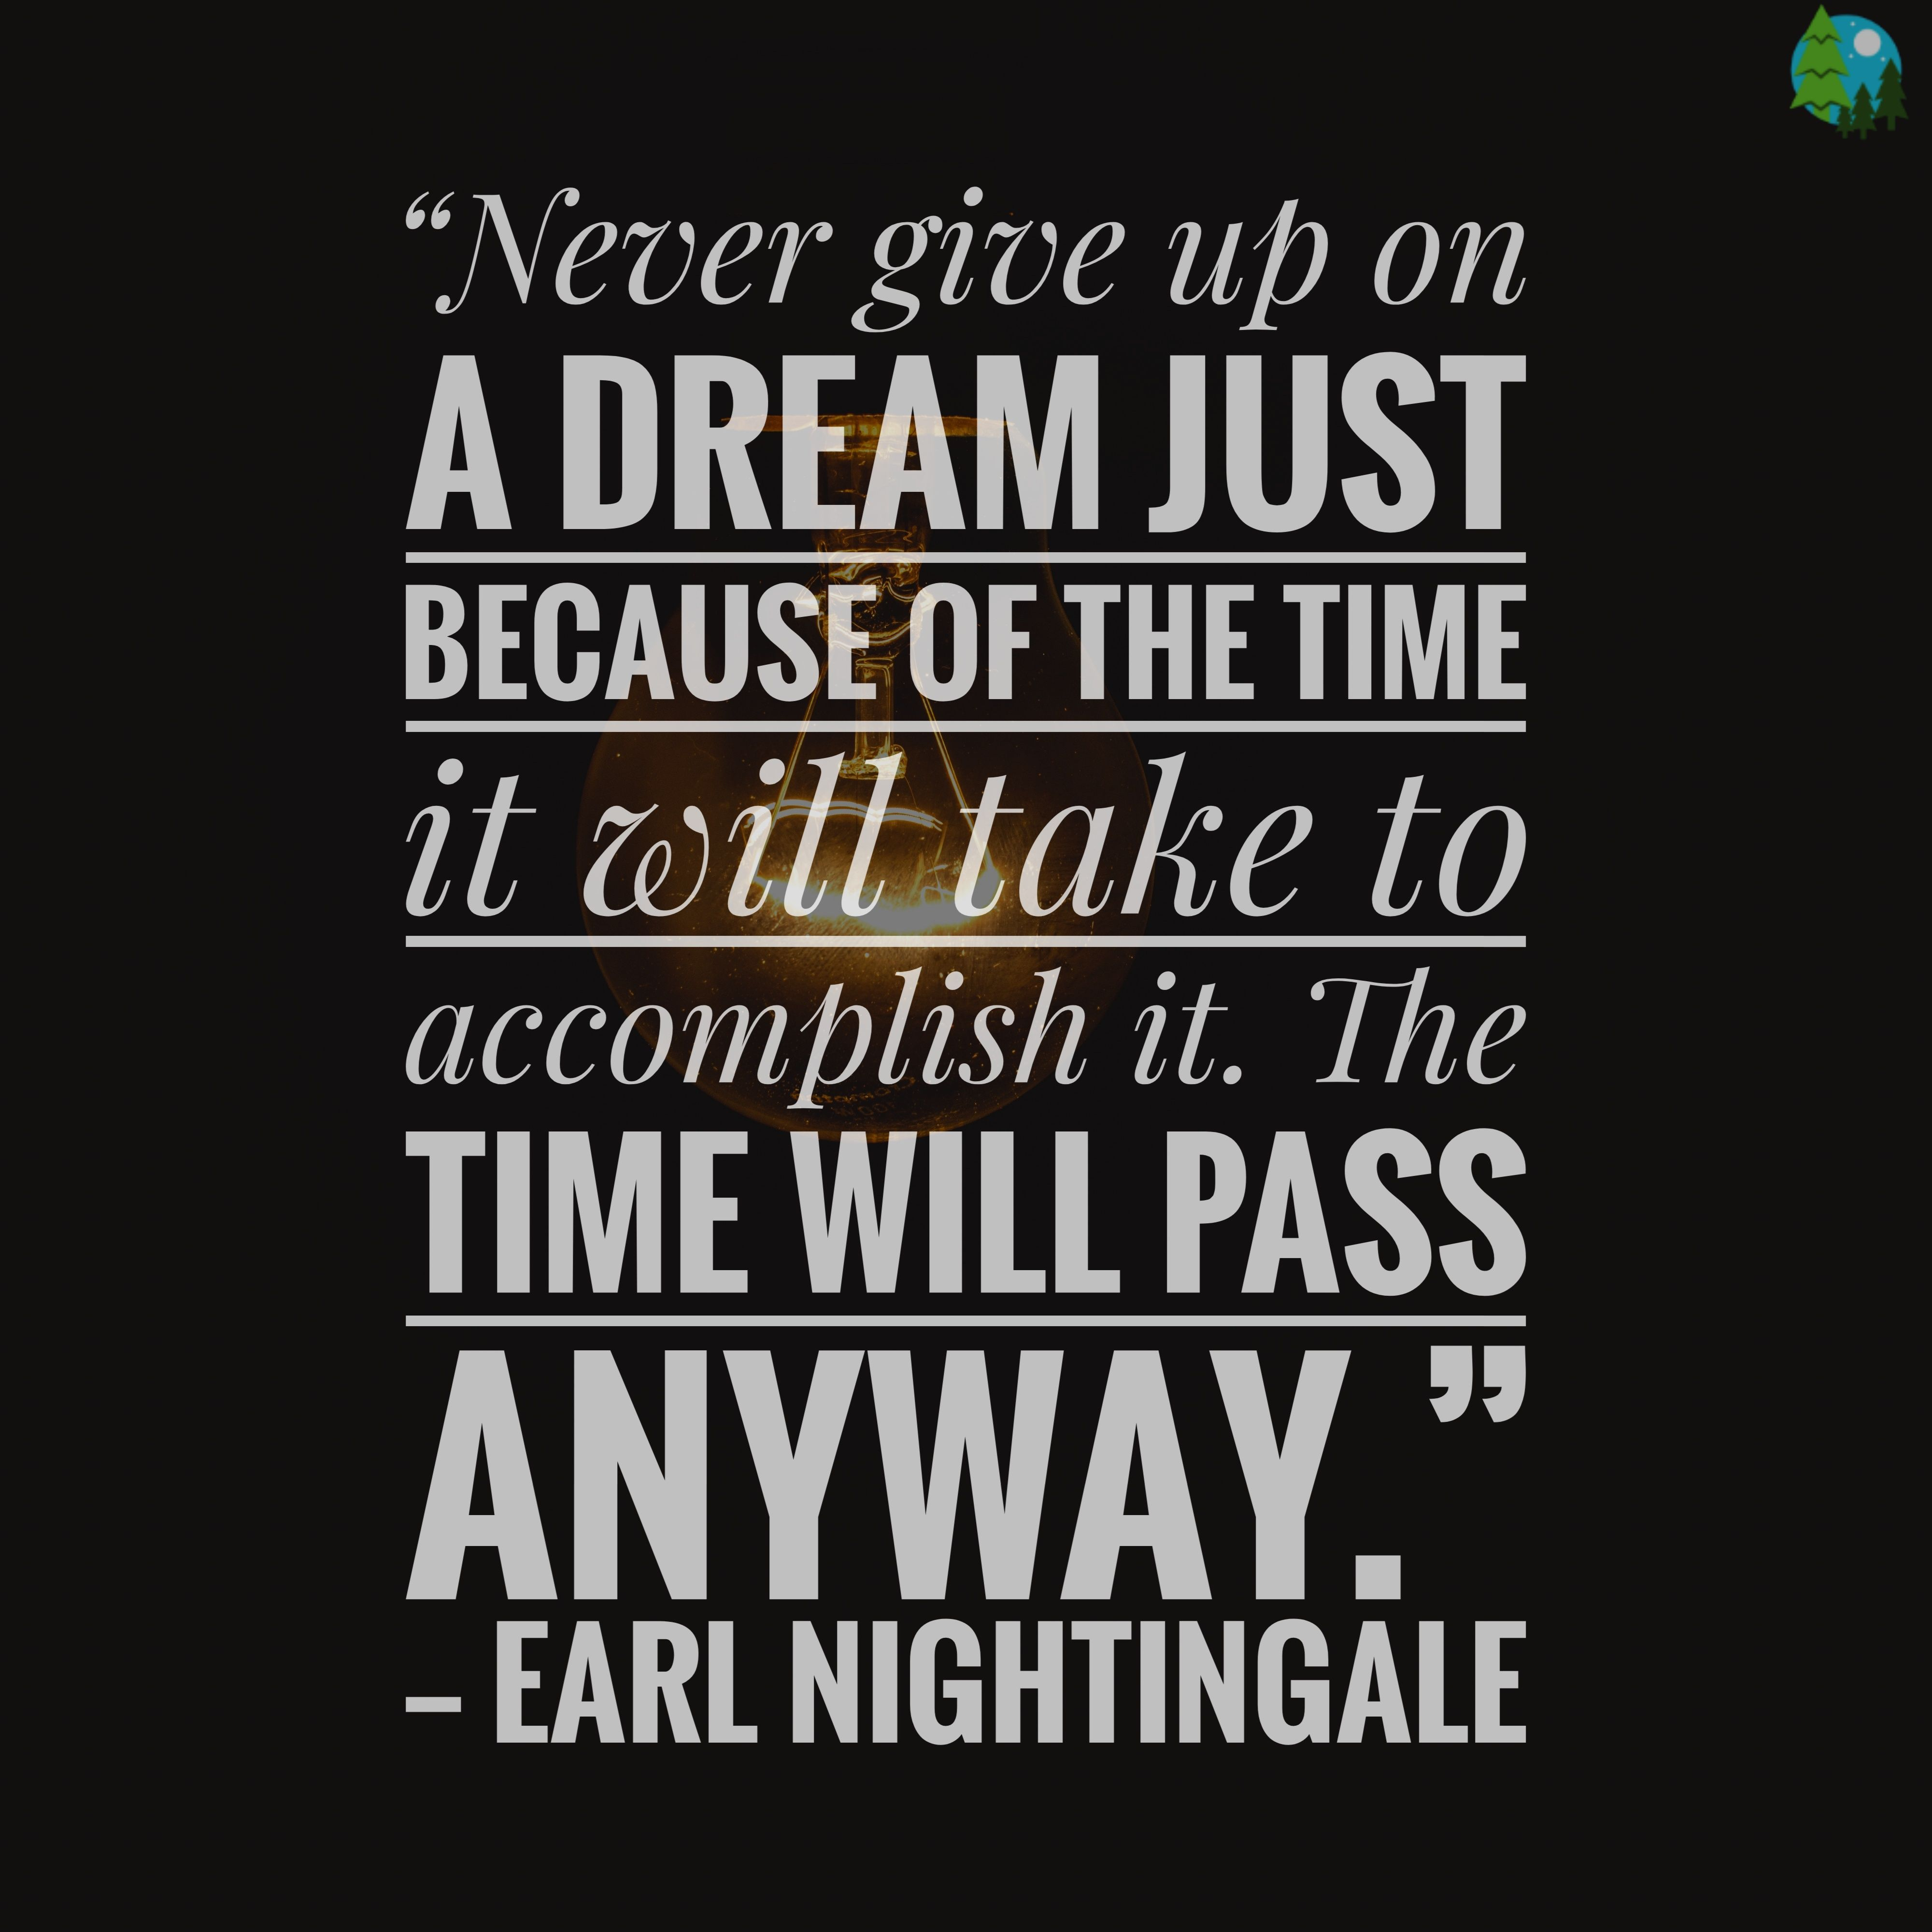 Top 10 Best Motivational Quotes Of All Time Best Motivational Quotes Motivational Quotes Time Quotes